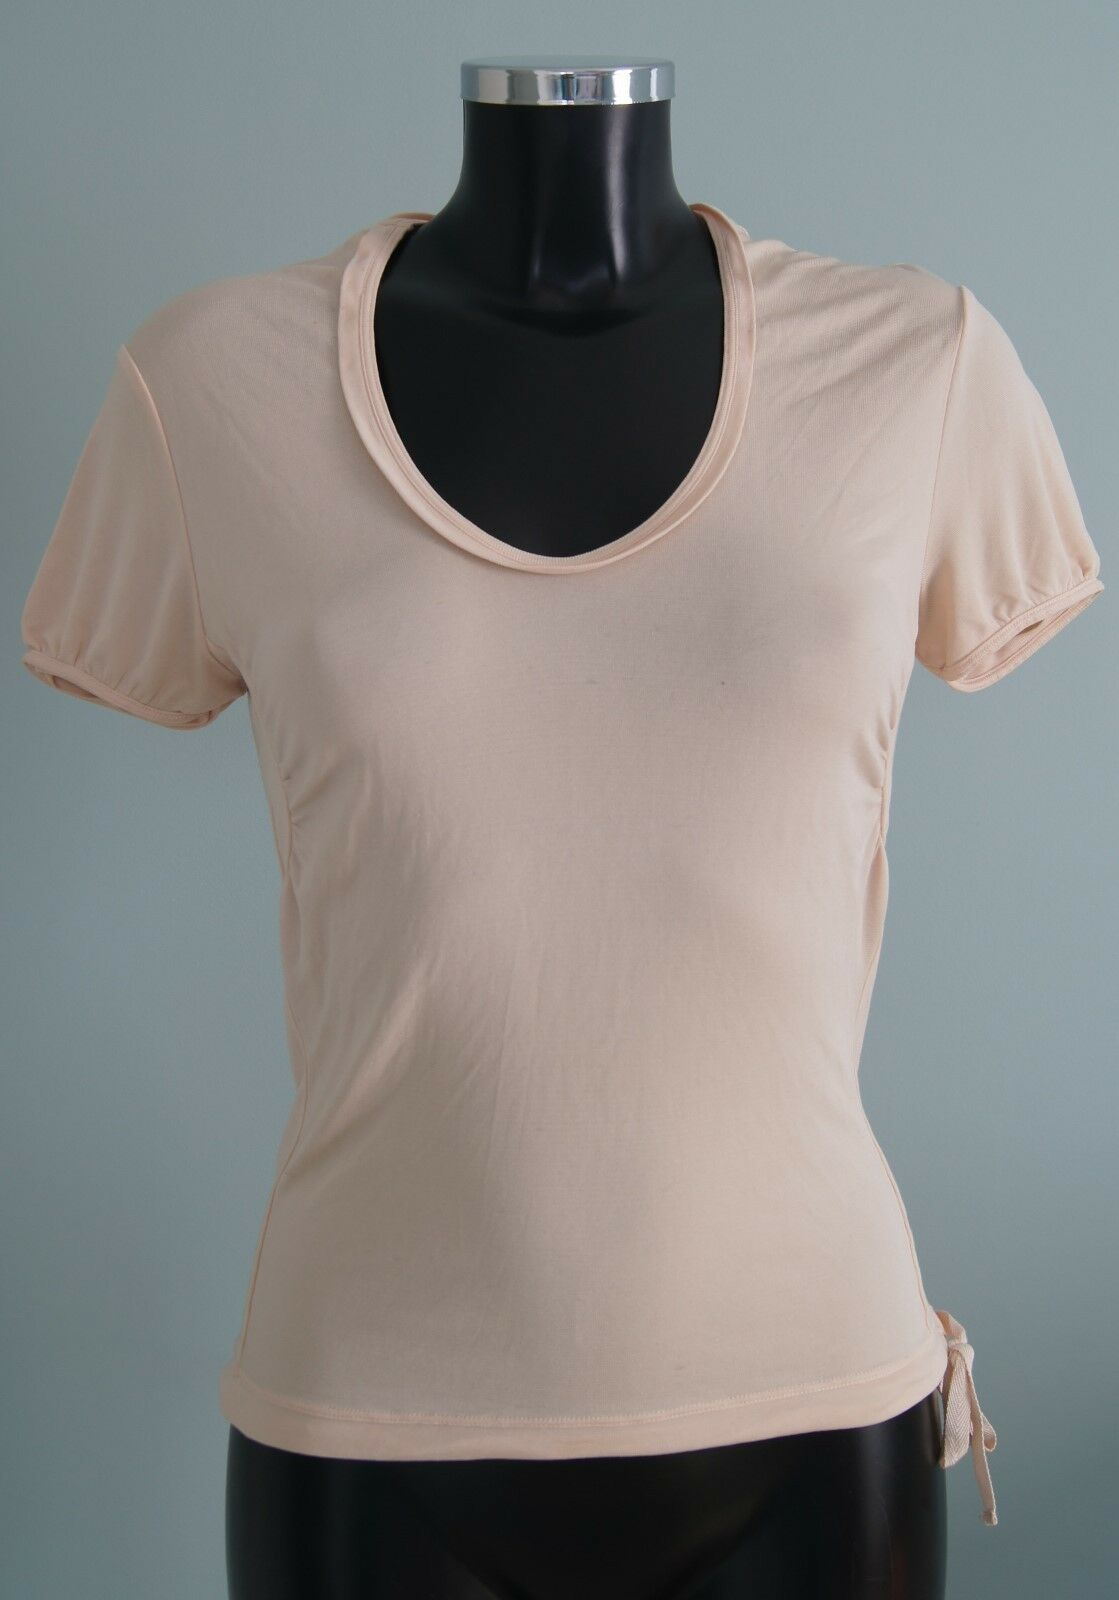 PRADA - HAUT - TOP - TEE SHIRT - size  M - AUTHENTIQUE